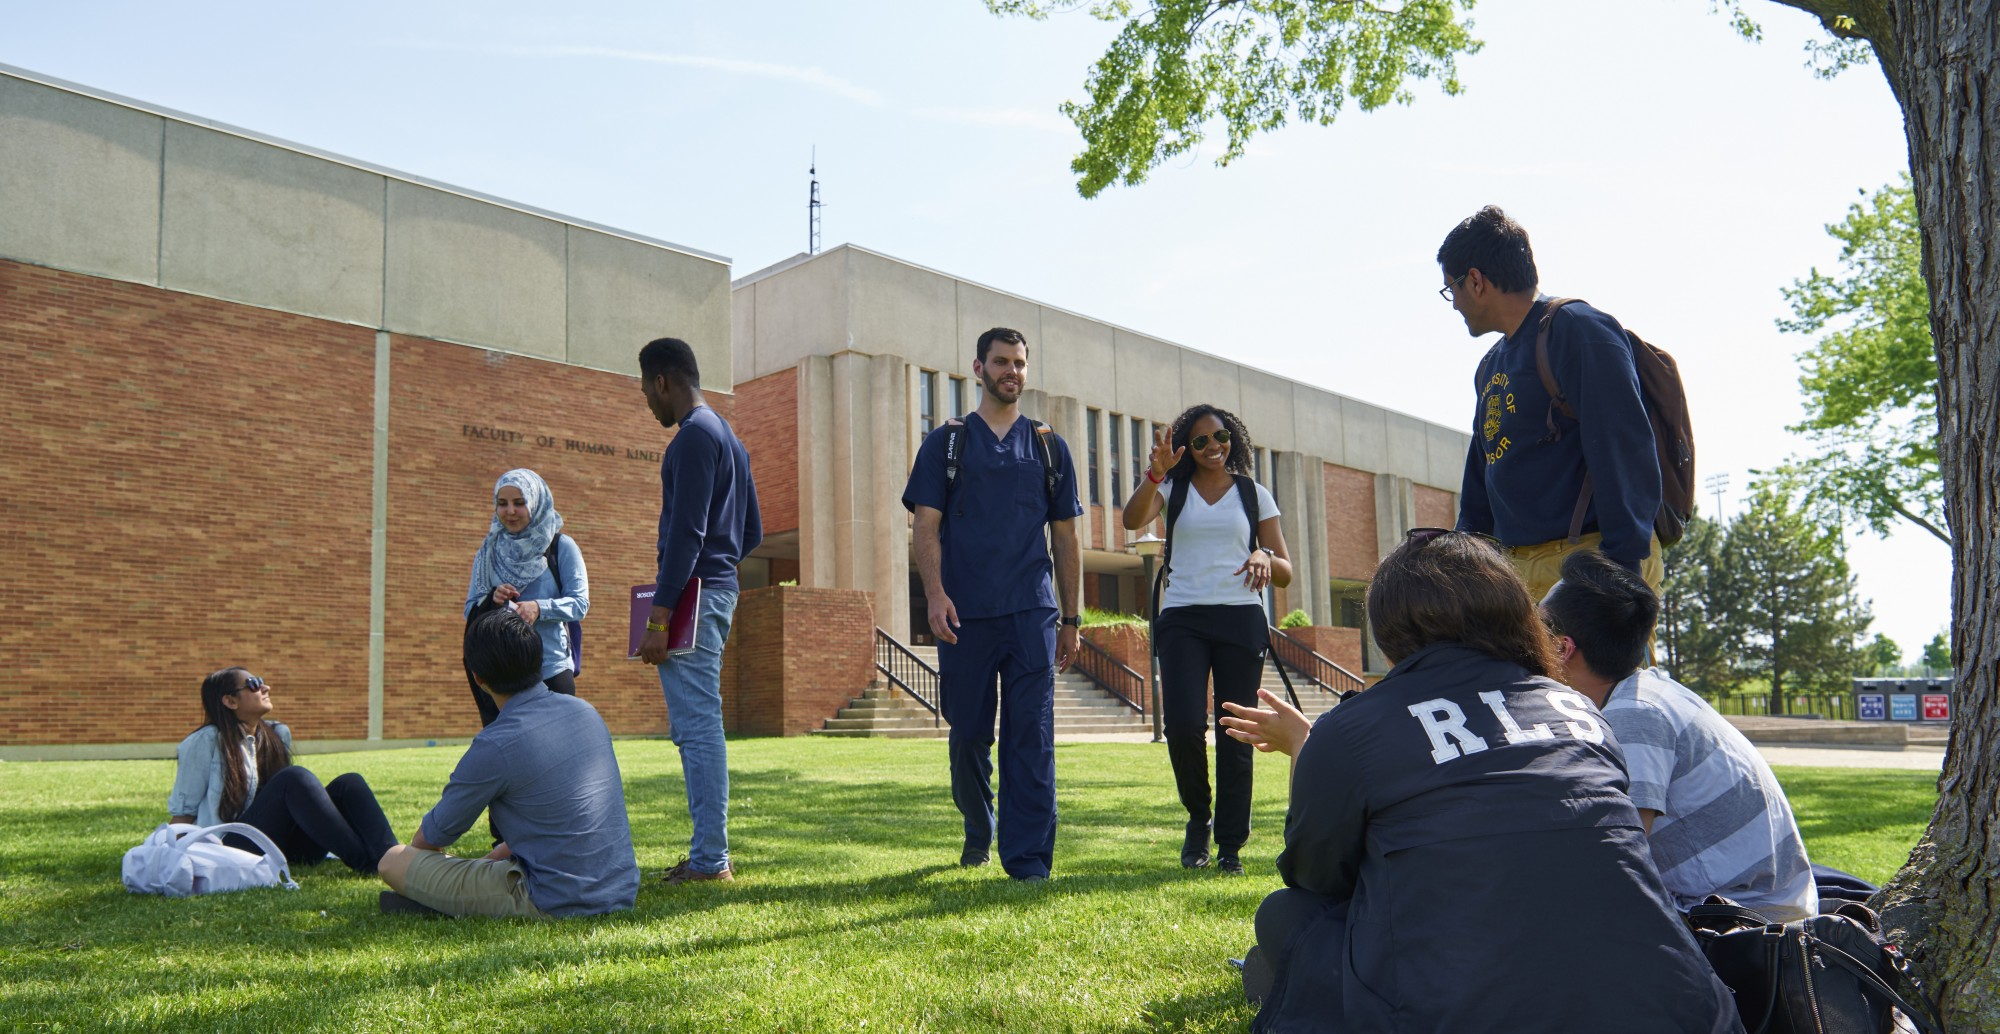 Students talking outdoors on campus grounds